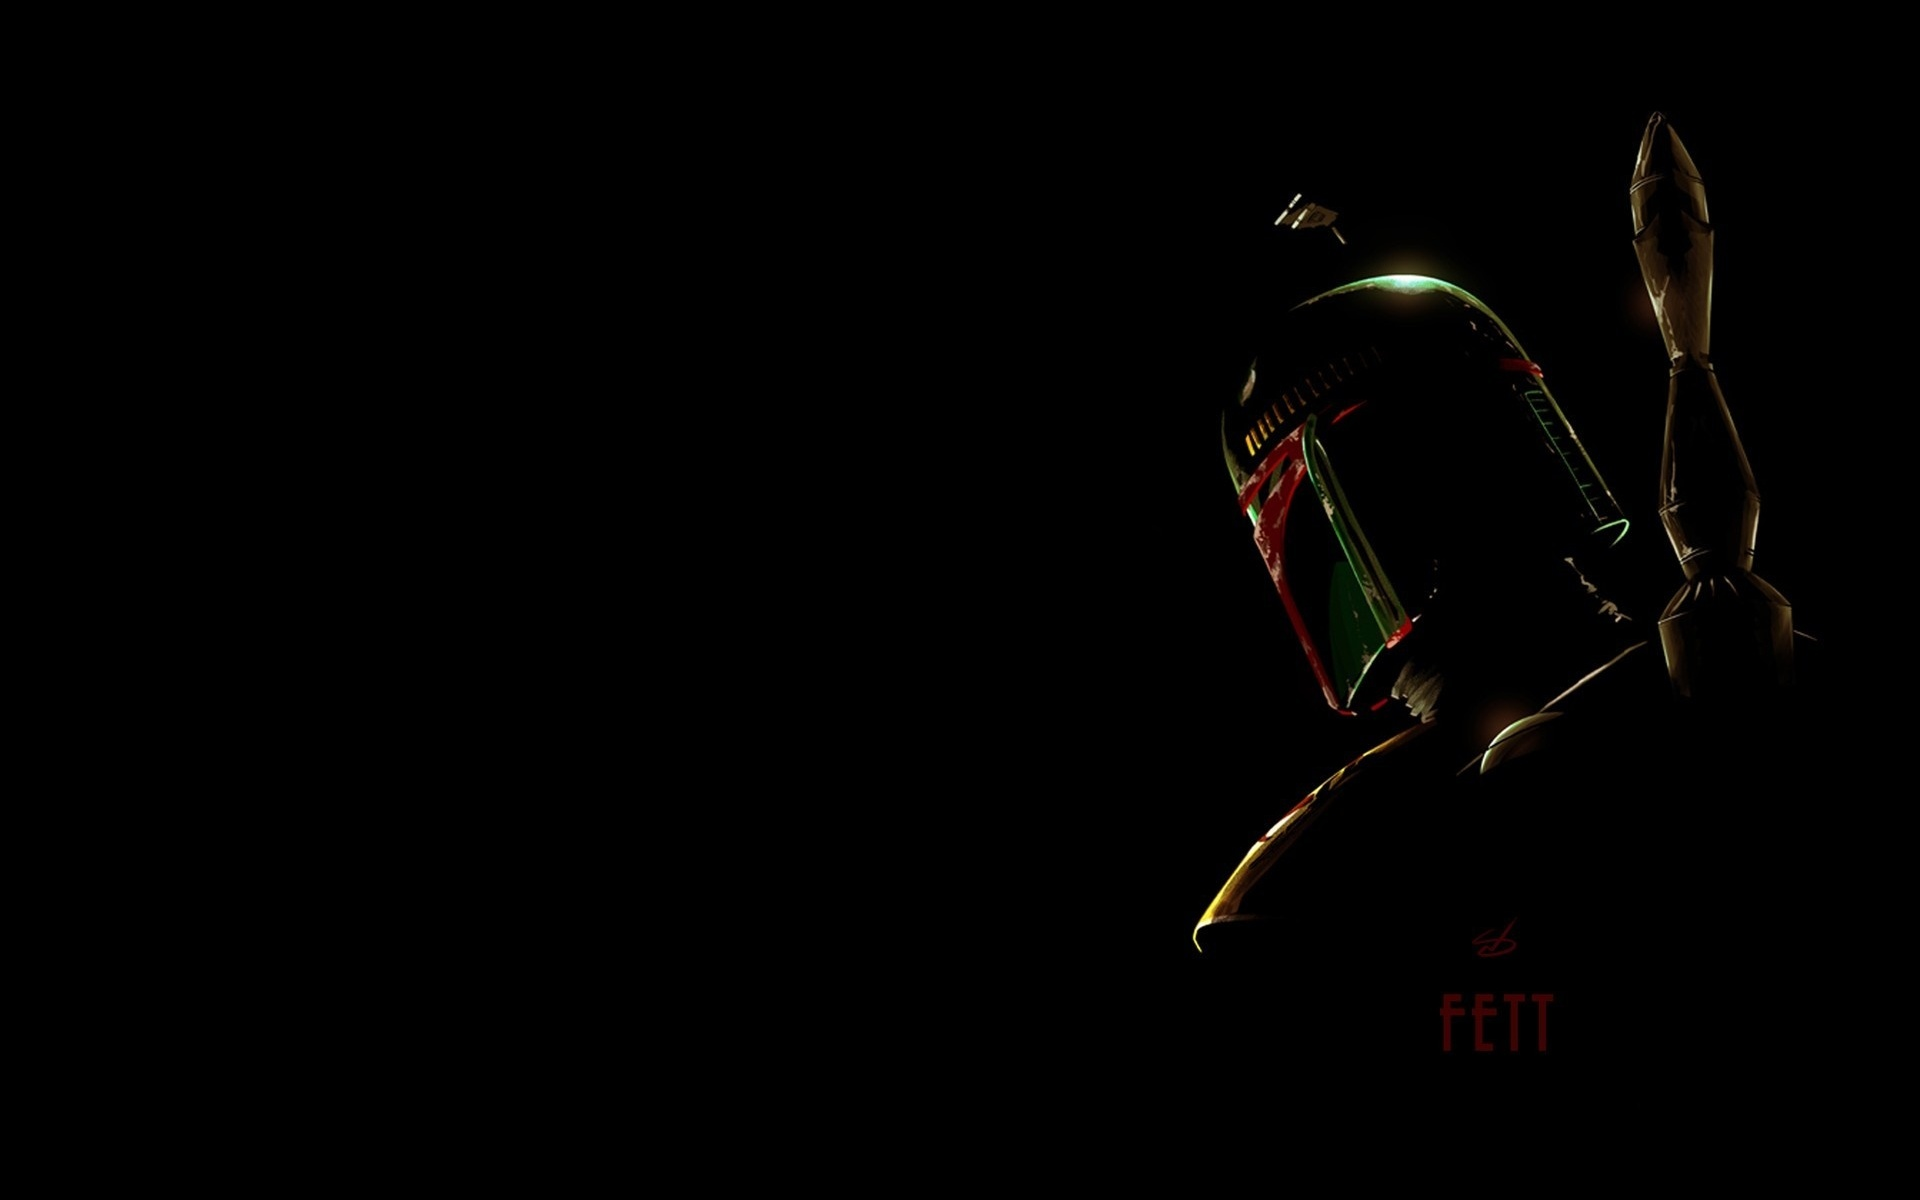 Boba fett star wars art wallpaper 1920x1200 76319 WallpaperUP 1920x1200